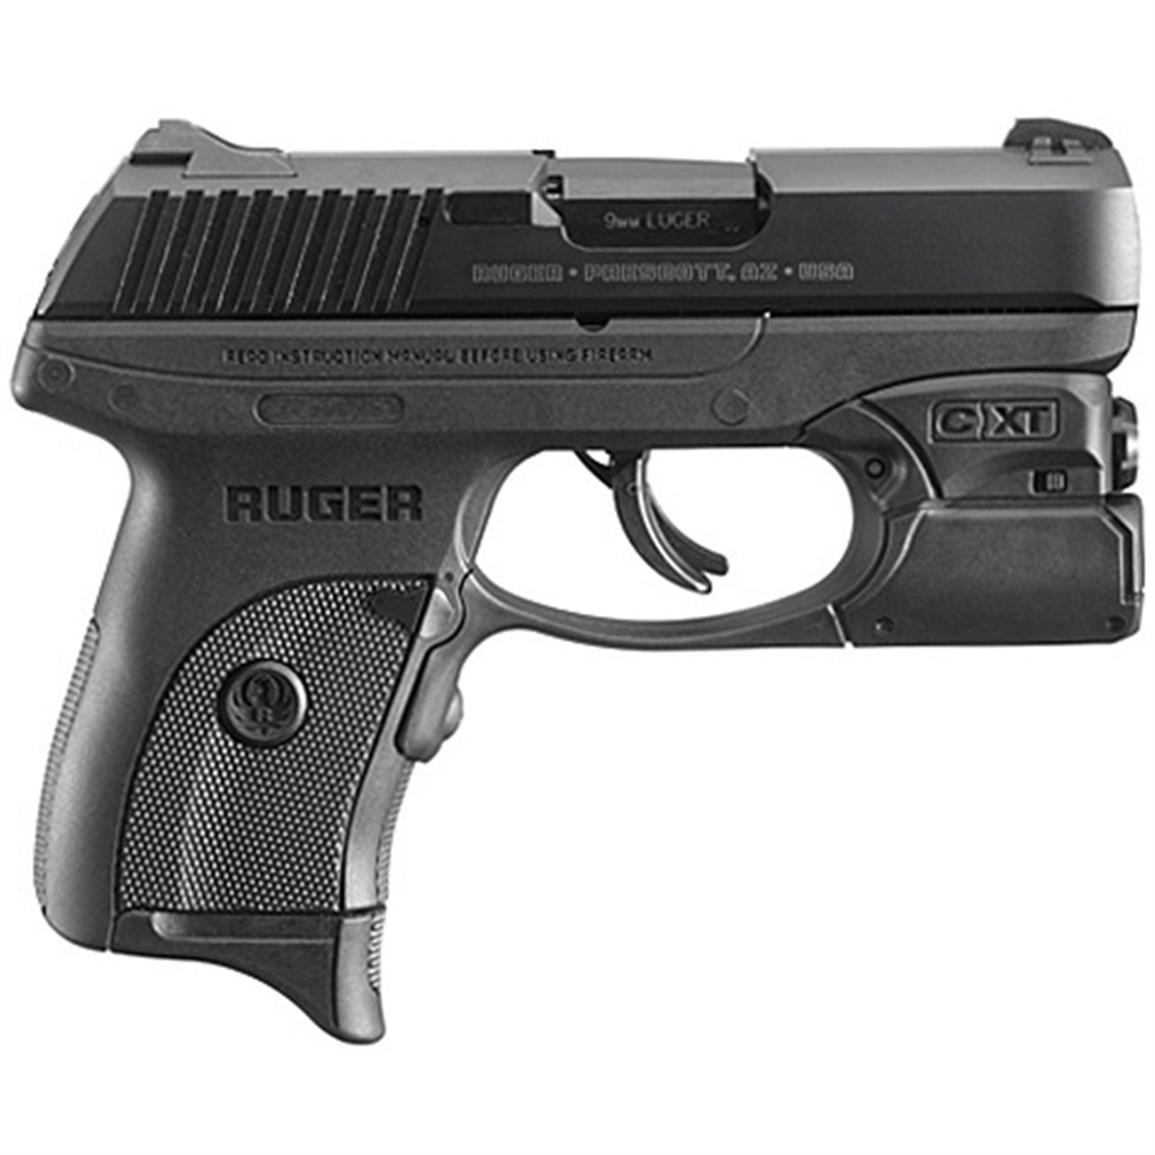 Ruger LC9s Talo Edition, Semi-automatic, 9mm, 3251, 736676032341, with CXT Light